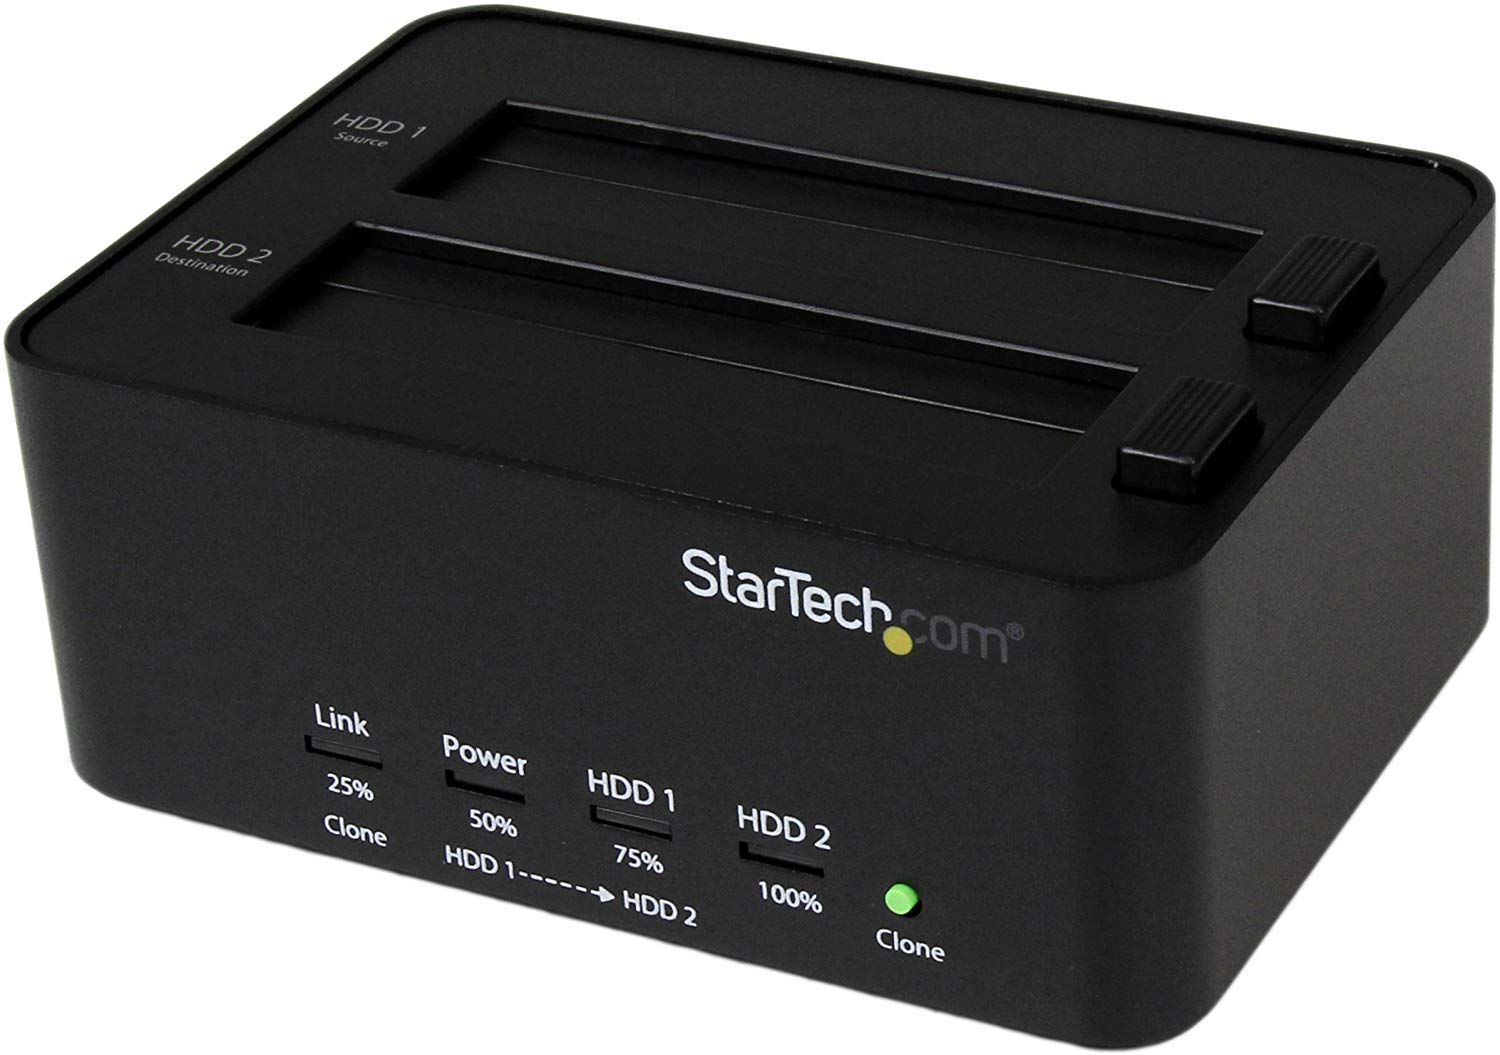 StarTech.com HDD Docking Station - USB 3.0 to 2.5/3.5in SATA